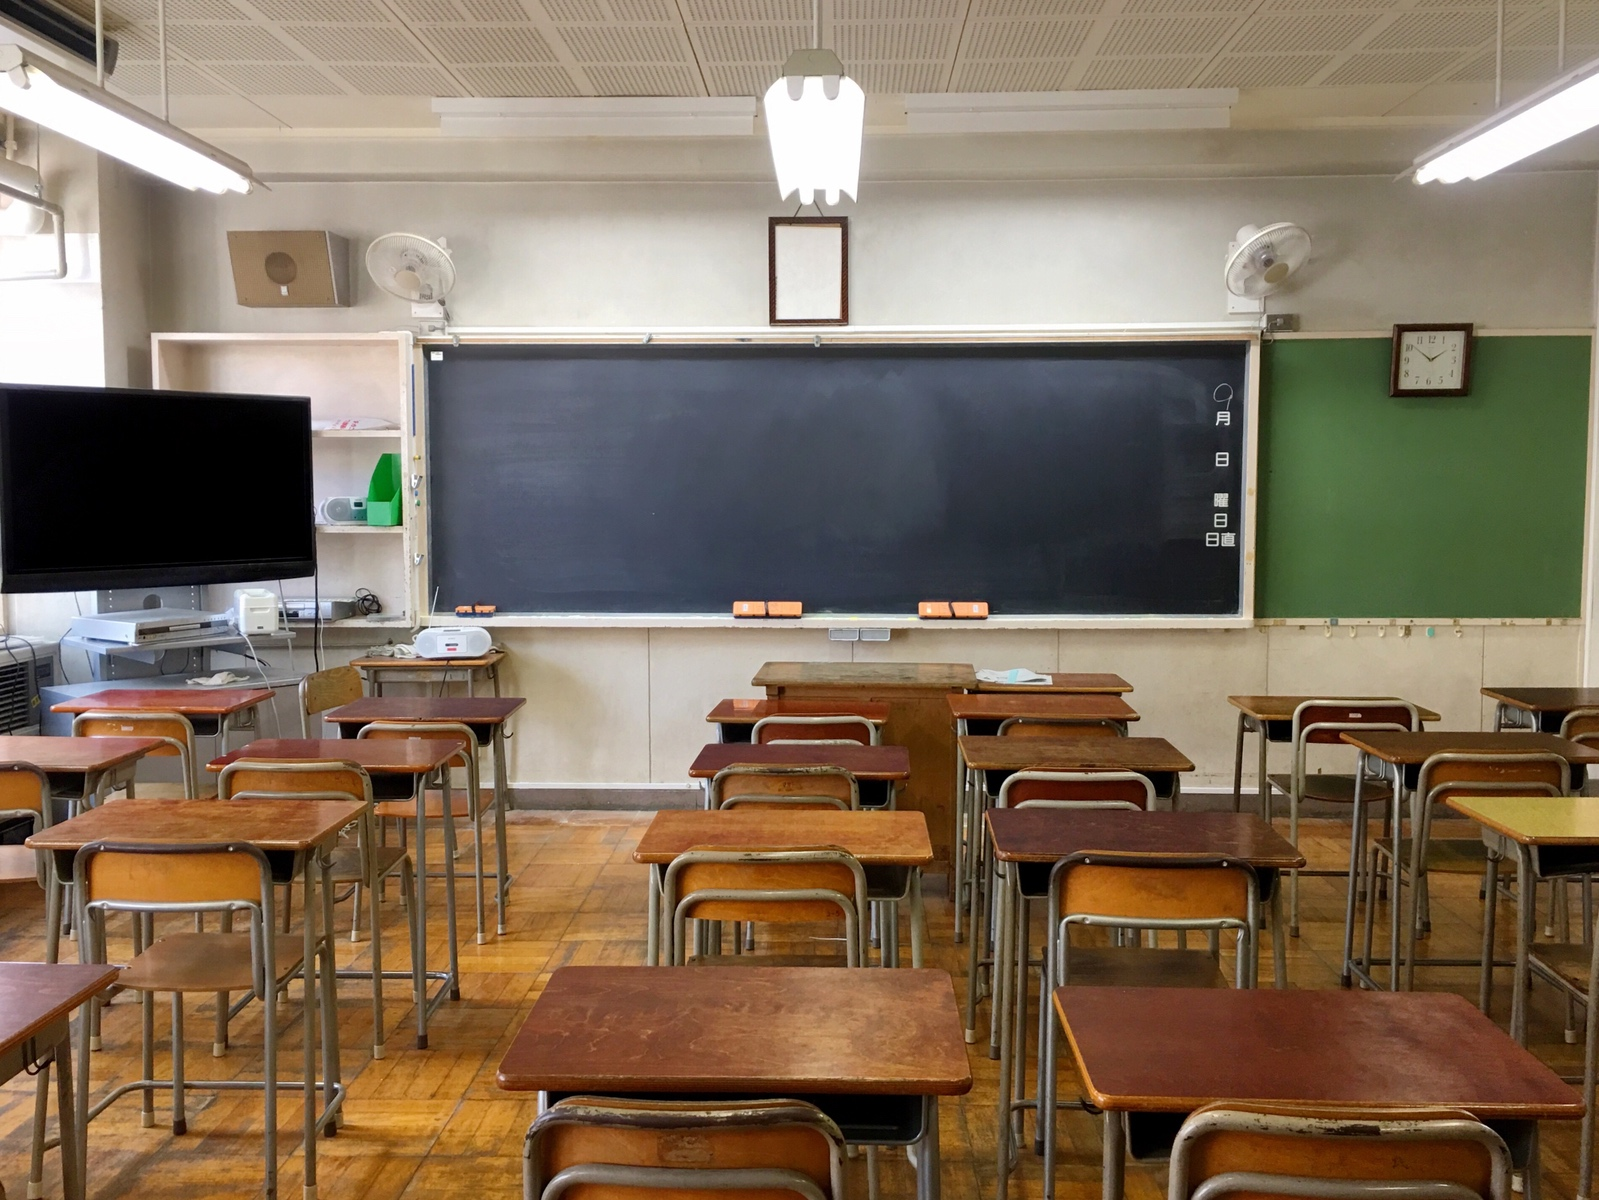 5 Steps to Handle Nervous Students in Class